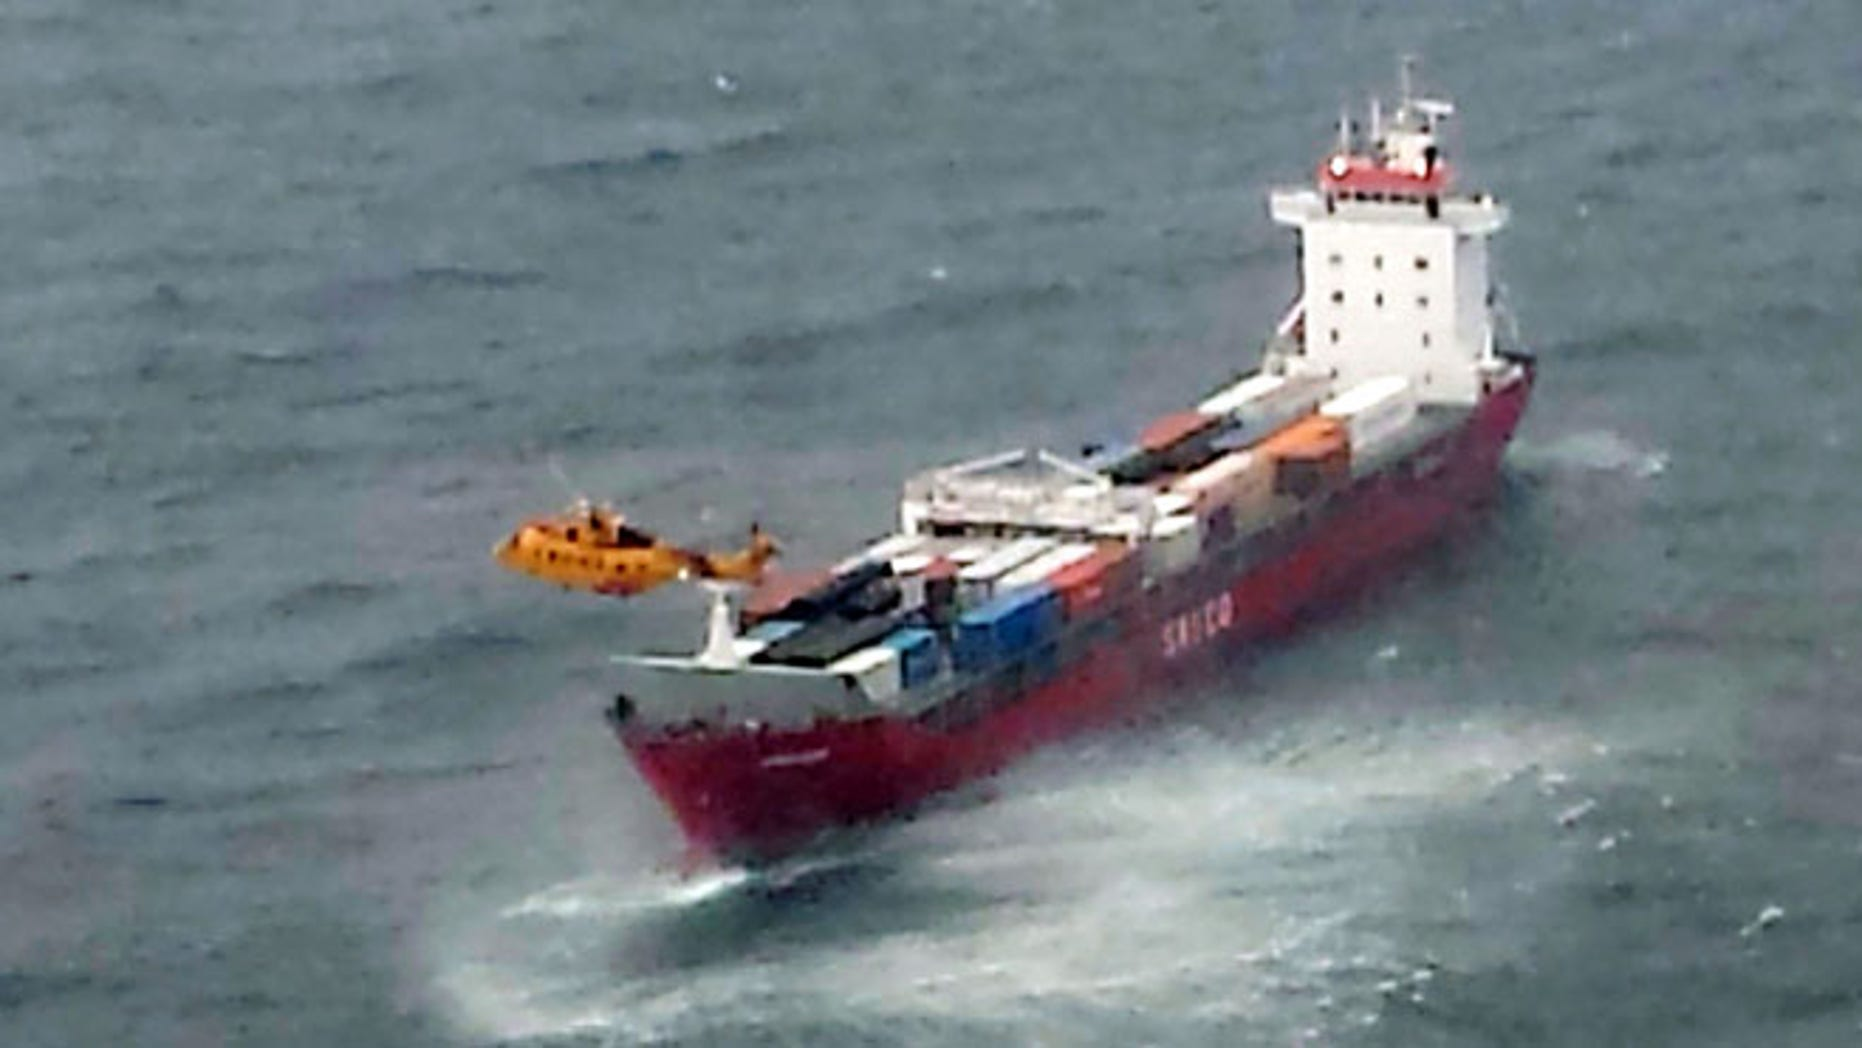 Oct. 17, 2014: A Canadian Coast Guard helicopter flies near a Russian container ship, carrying hundreds of tons of fuel drifting without power in rough seas off British Columbia's northern coast